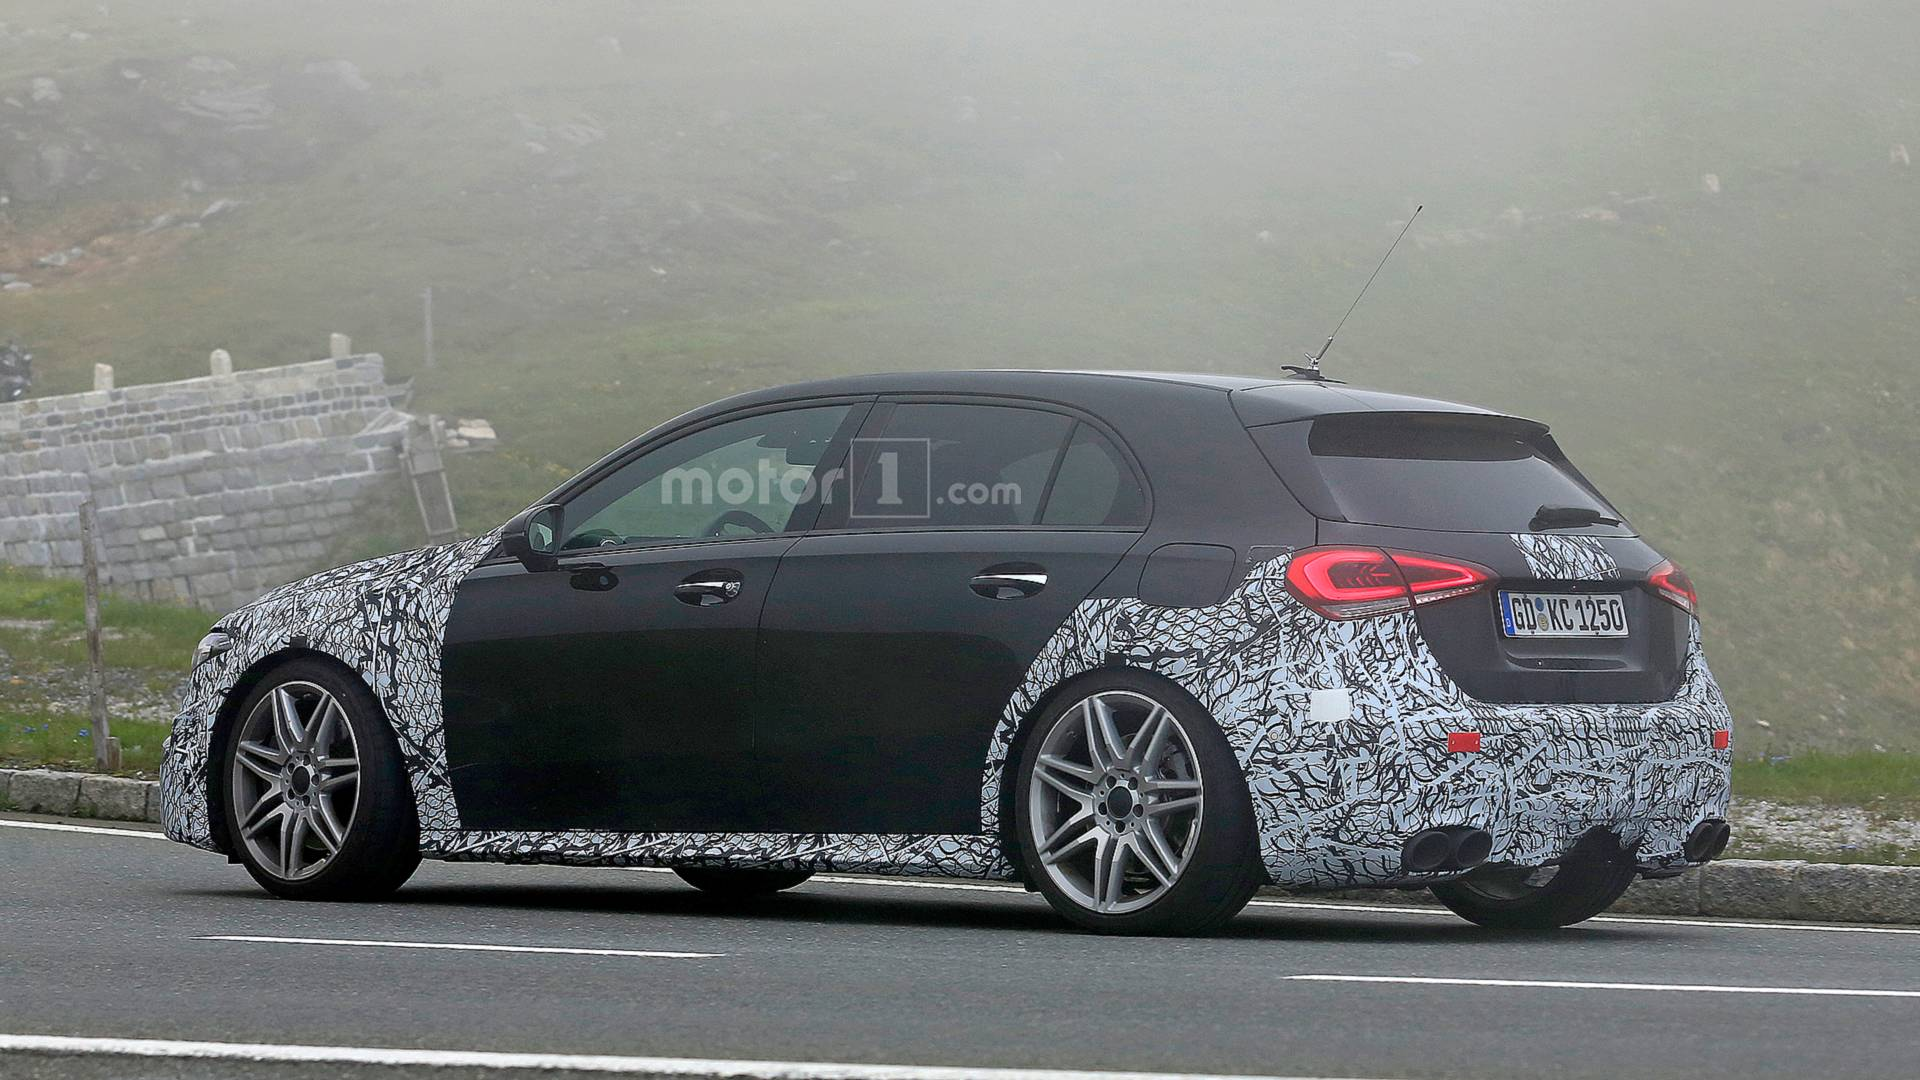 Mercedes-AMG A45 Confirmed With Drift Mode, 8-Speed Auto